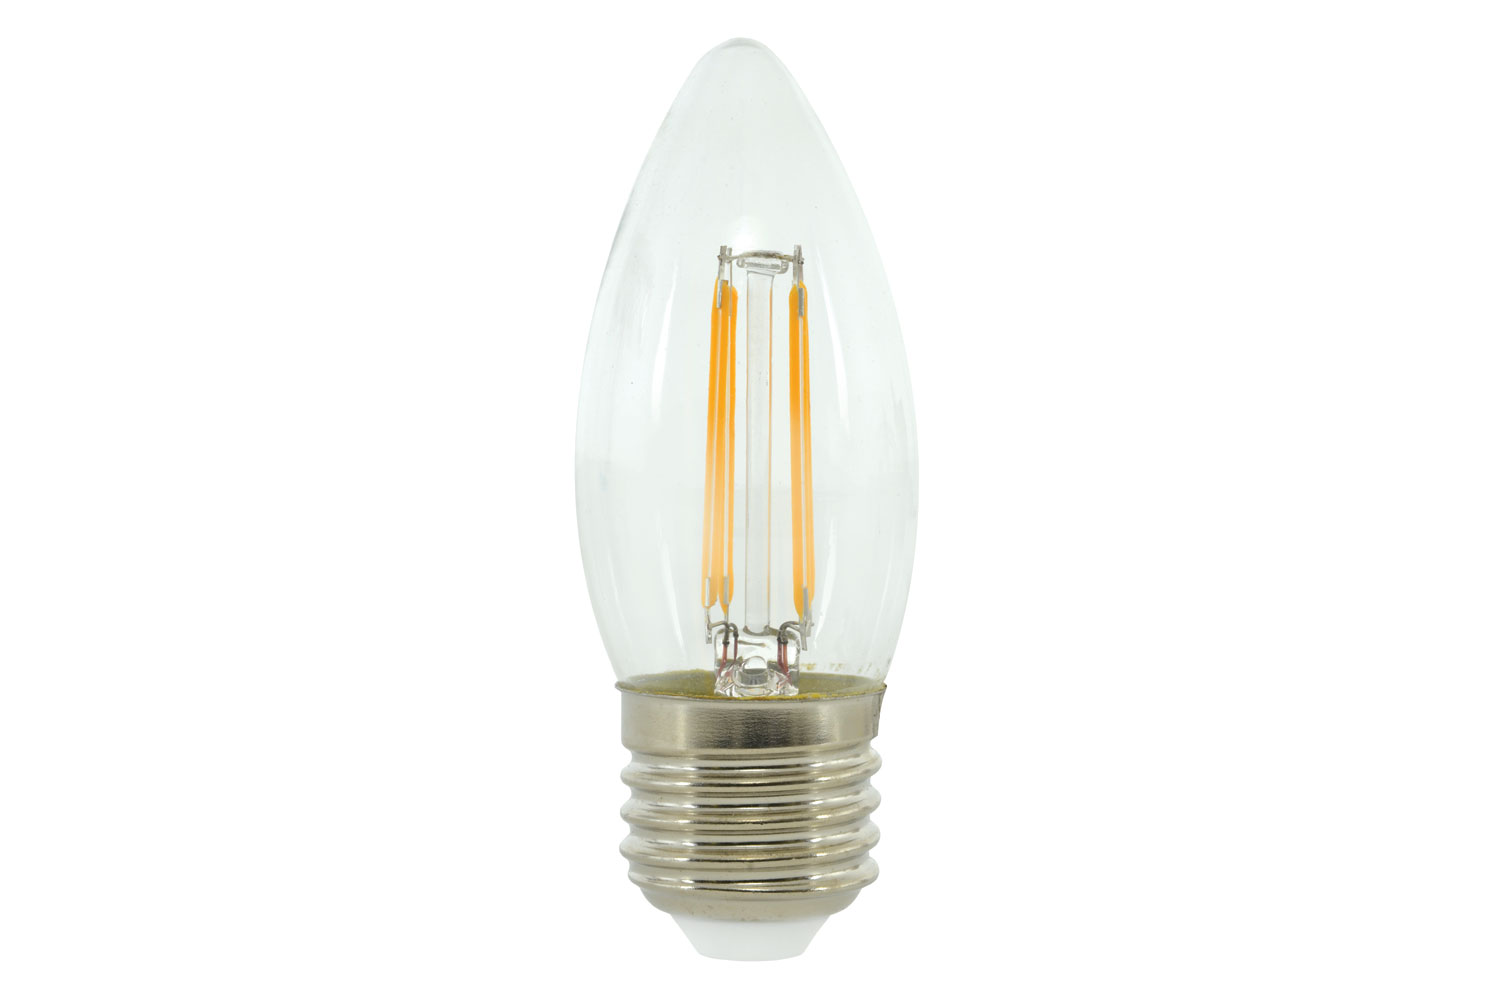 lyyt Candle Filament Lamp 4W LED E27 WW